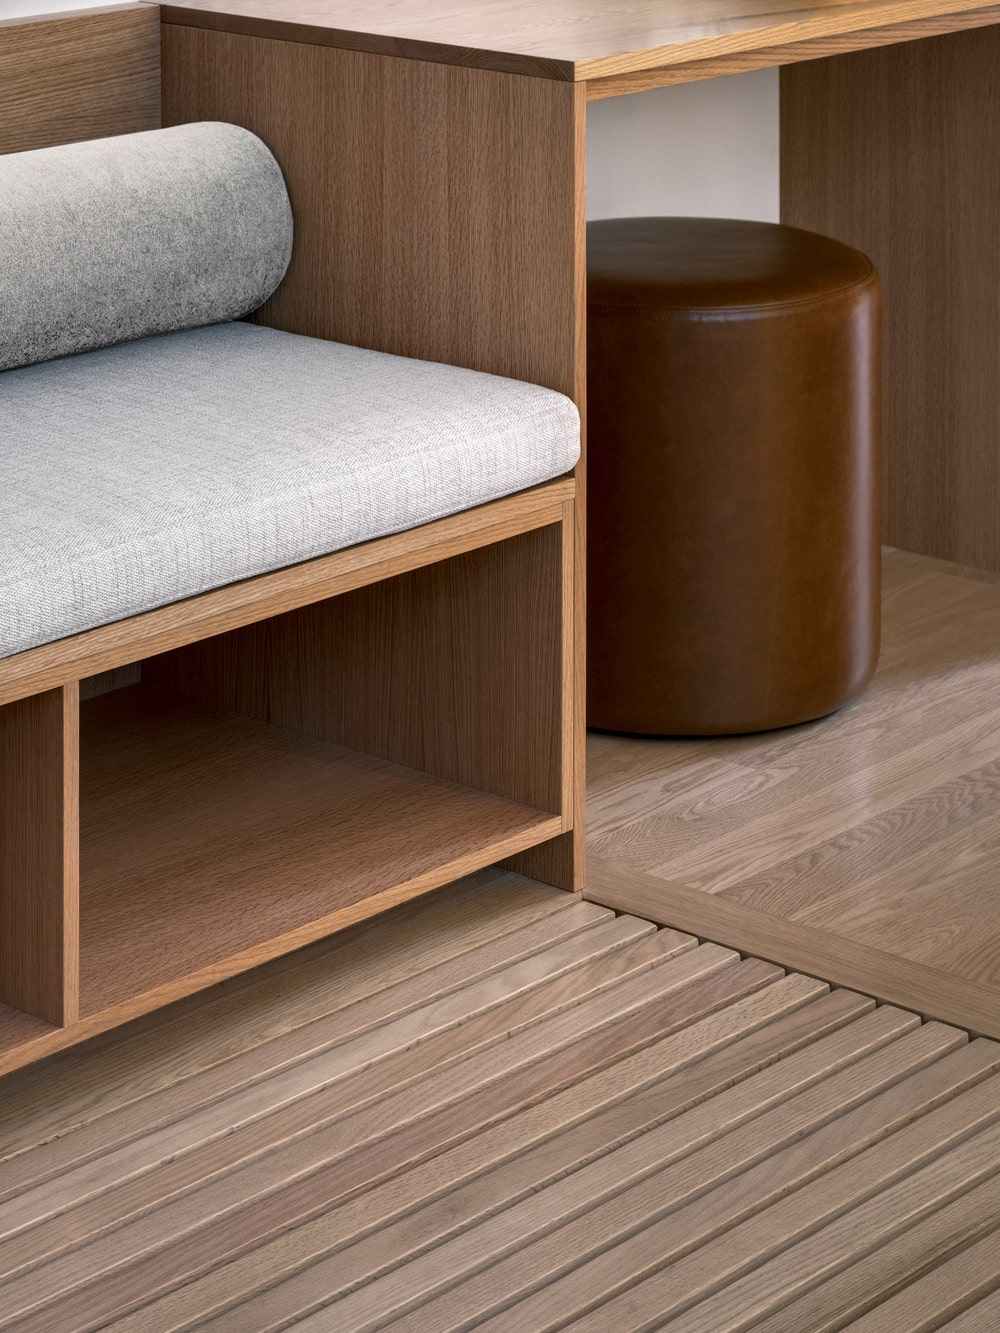 This is a close look at the built-in wooden sofa and its built-in shelving underneath for various storage.